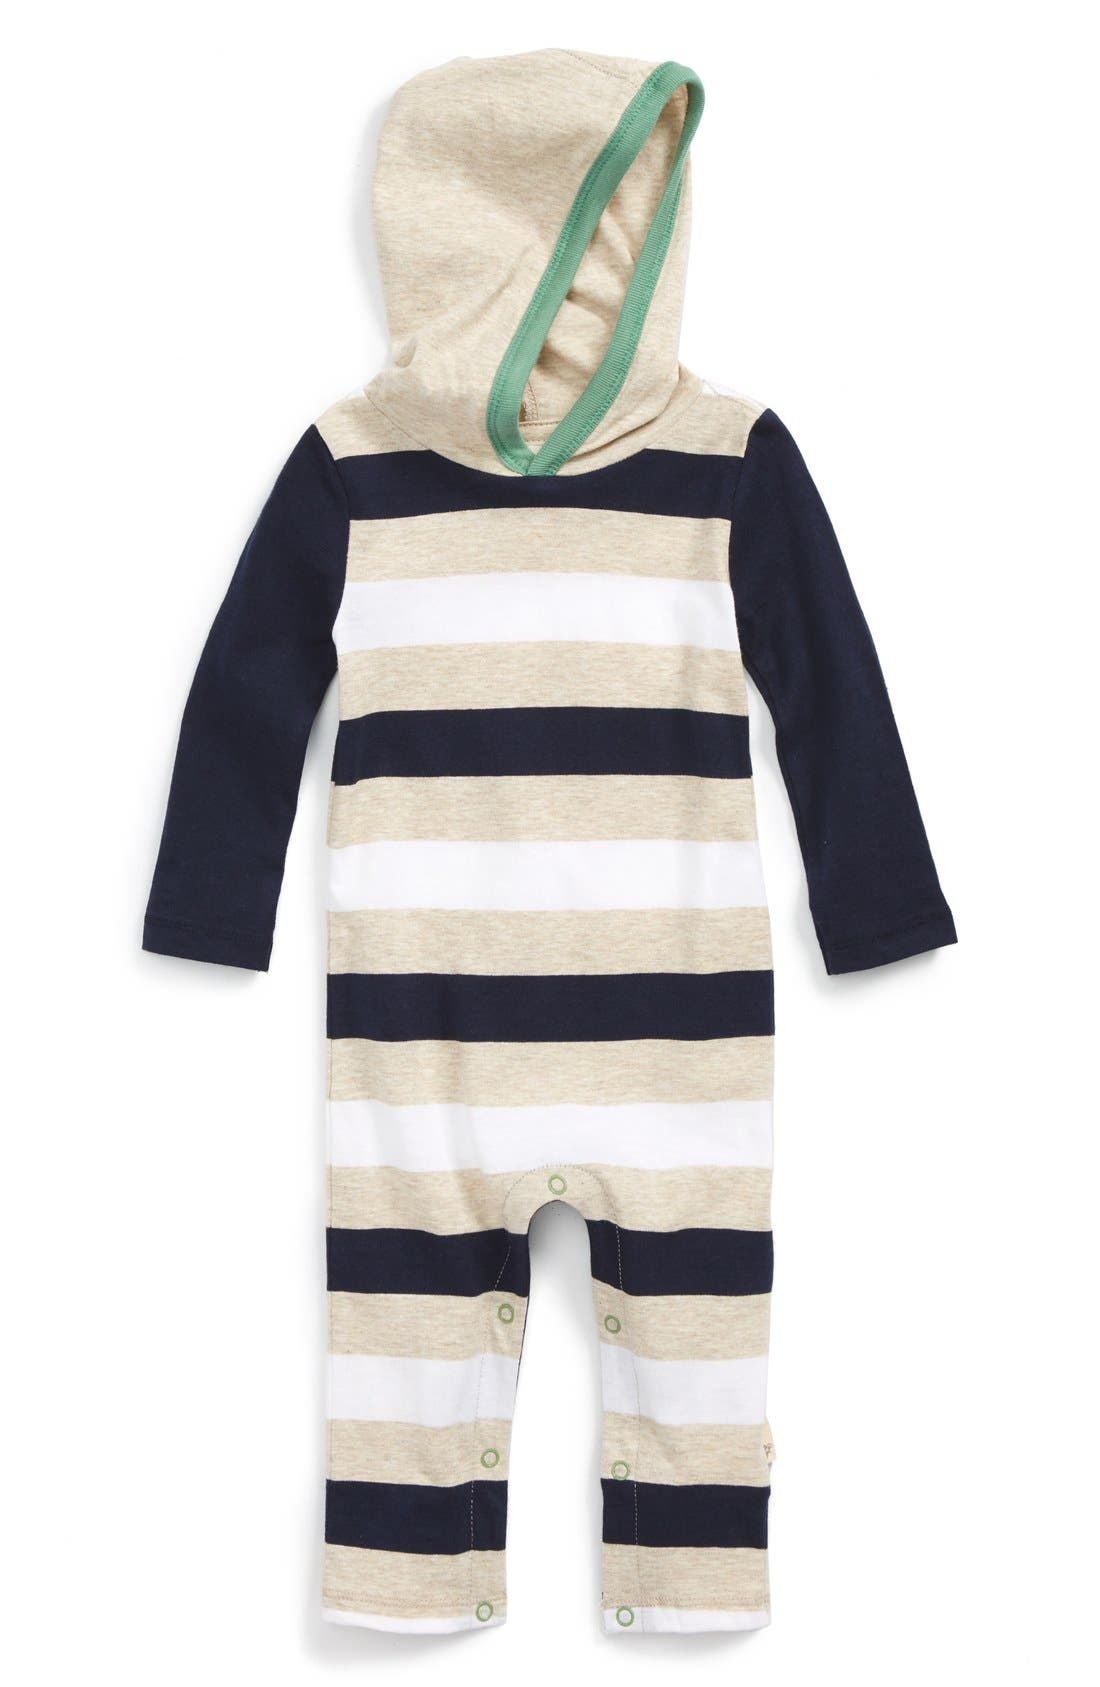 BURT'S BEES BABY, Hooded Organic Cotton Romper, Main thumbnail 1, color, 410